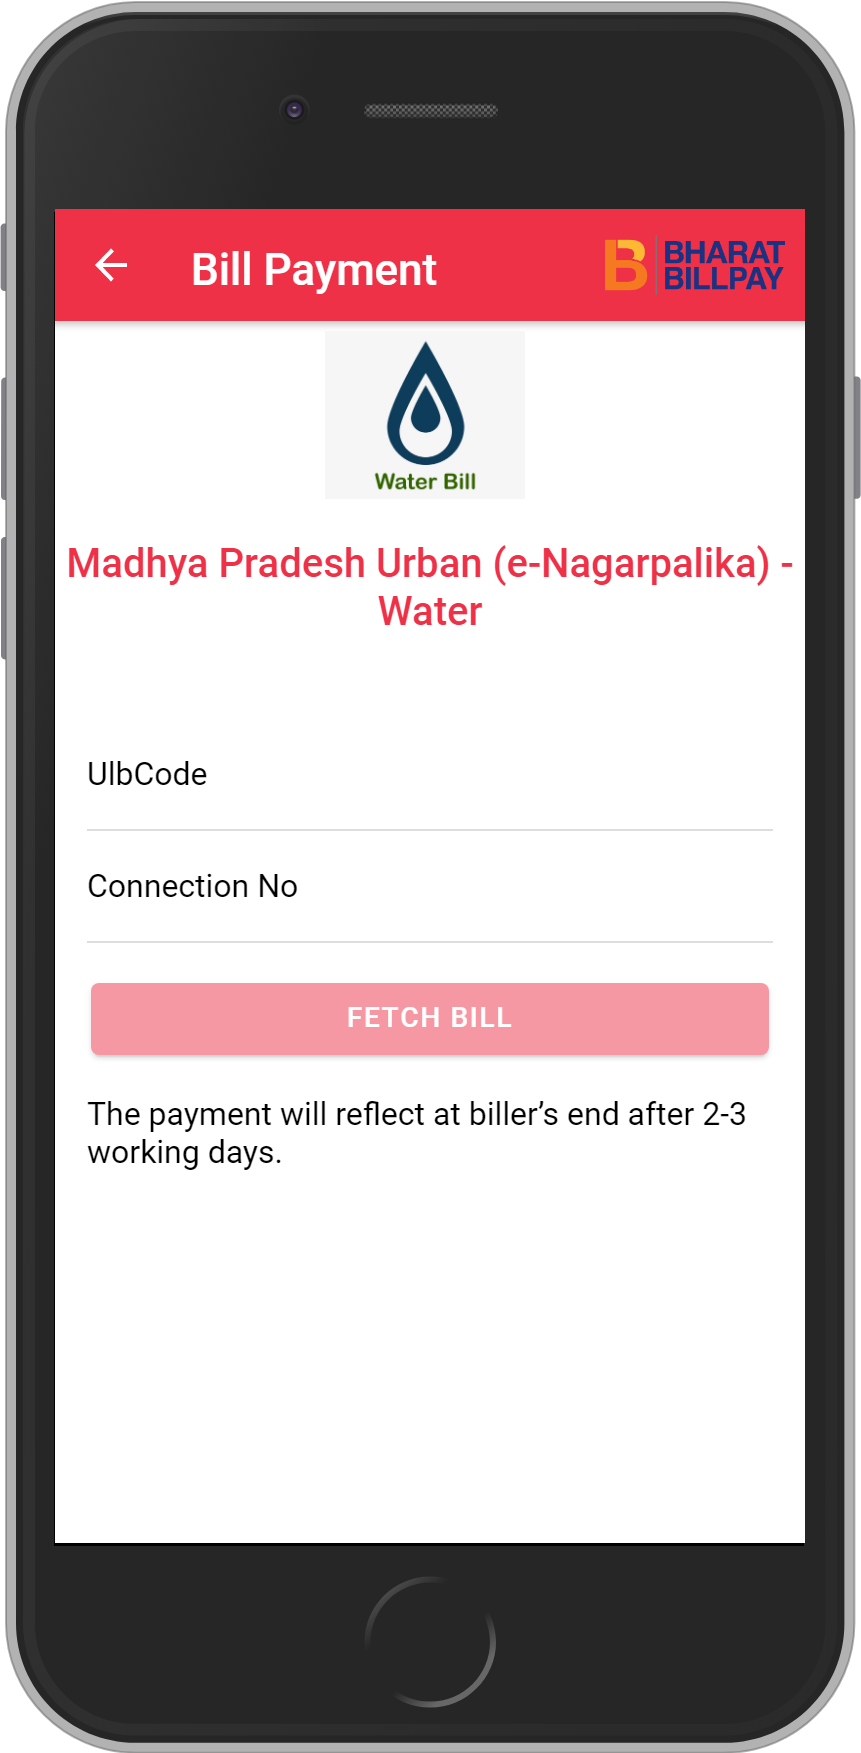 Get UNLIMITED <b>0.1%</b> CASHBACK on Madhya Pradesh Urban (e-Nagarpalika) – Water Bill Payment.